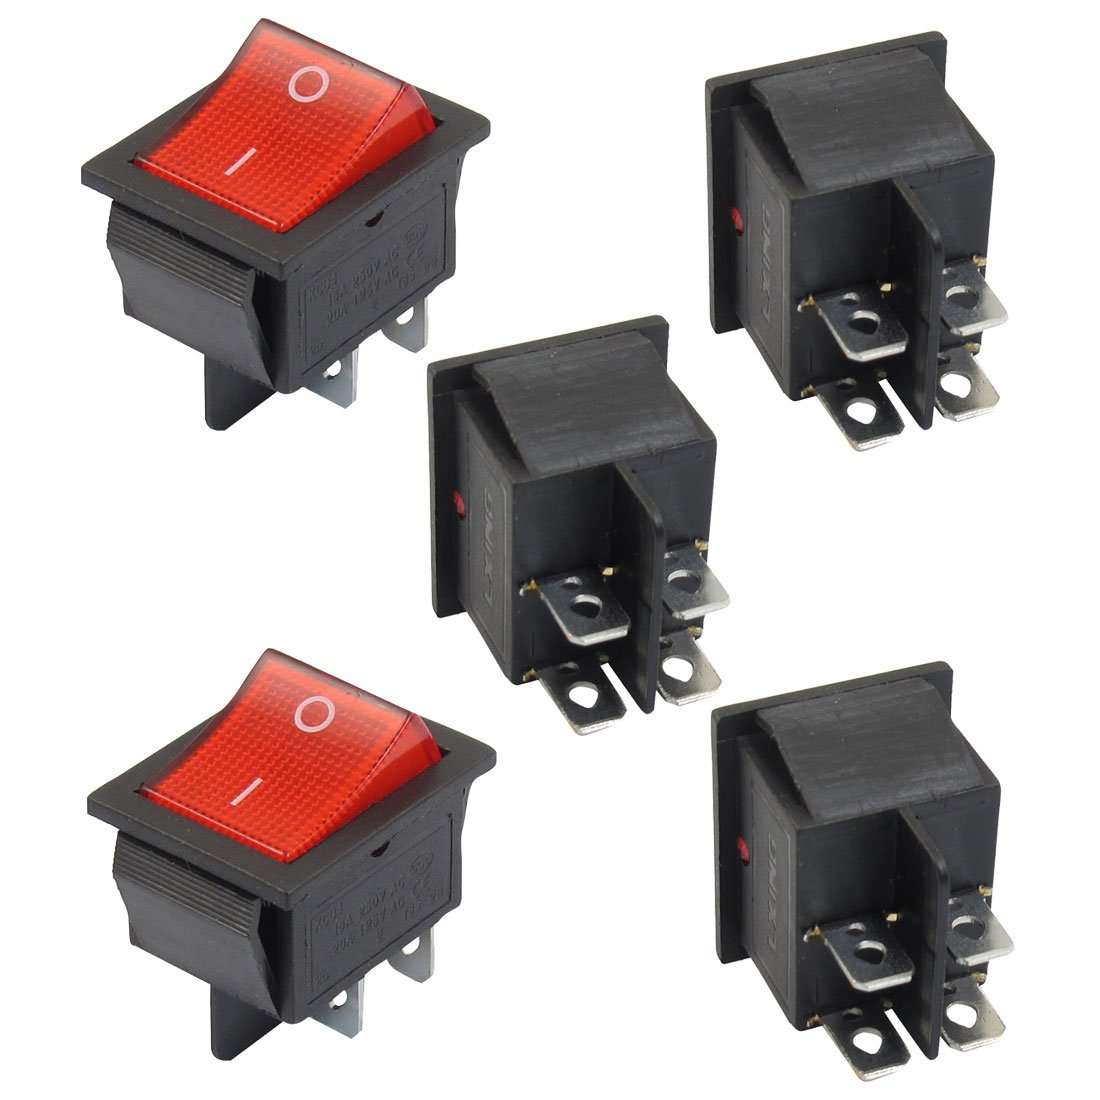 5 X Red Illuminated Light On Off Dpst Boat Rocker Switch 16a 250v Various Types Of Push Button Horn Toggle Simple Color Black Redmaterial Plastic Metal Total Weight 59gpackage Content Switches